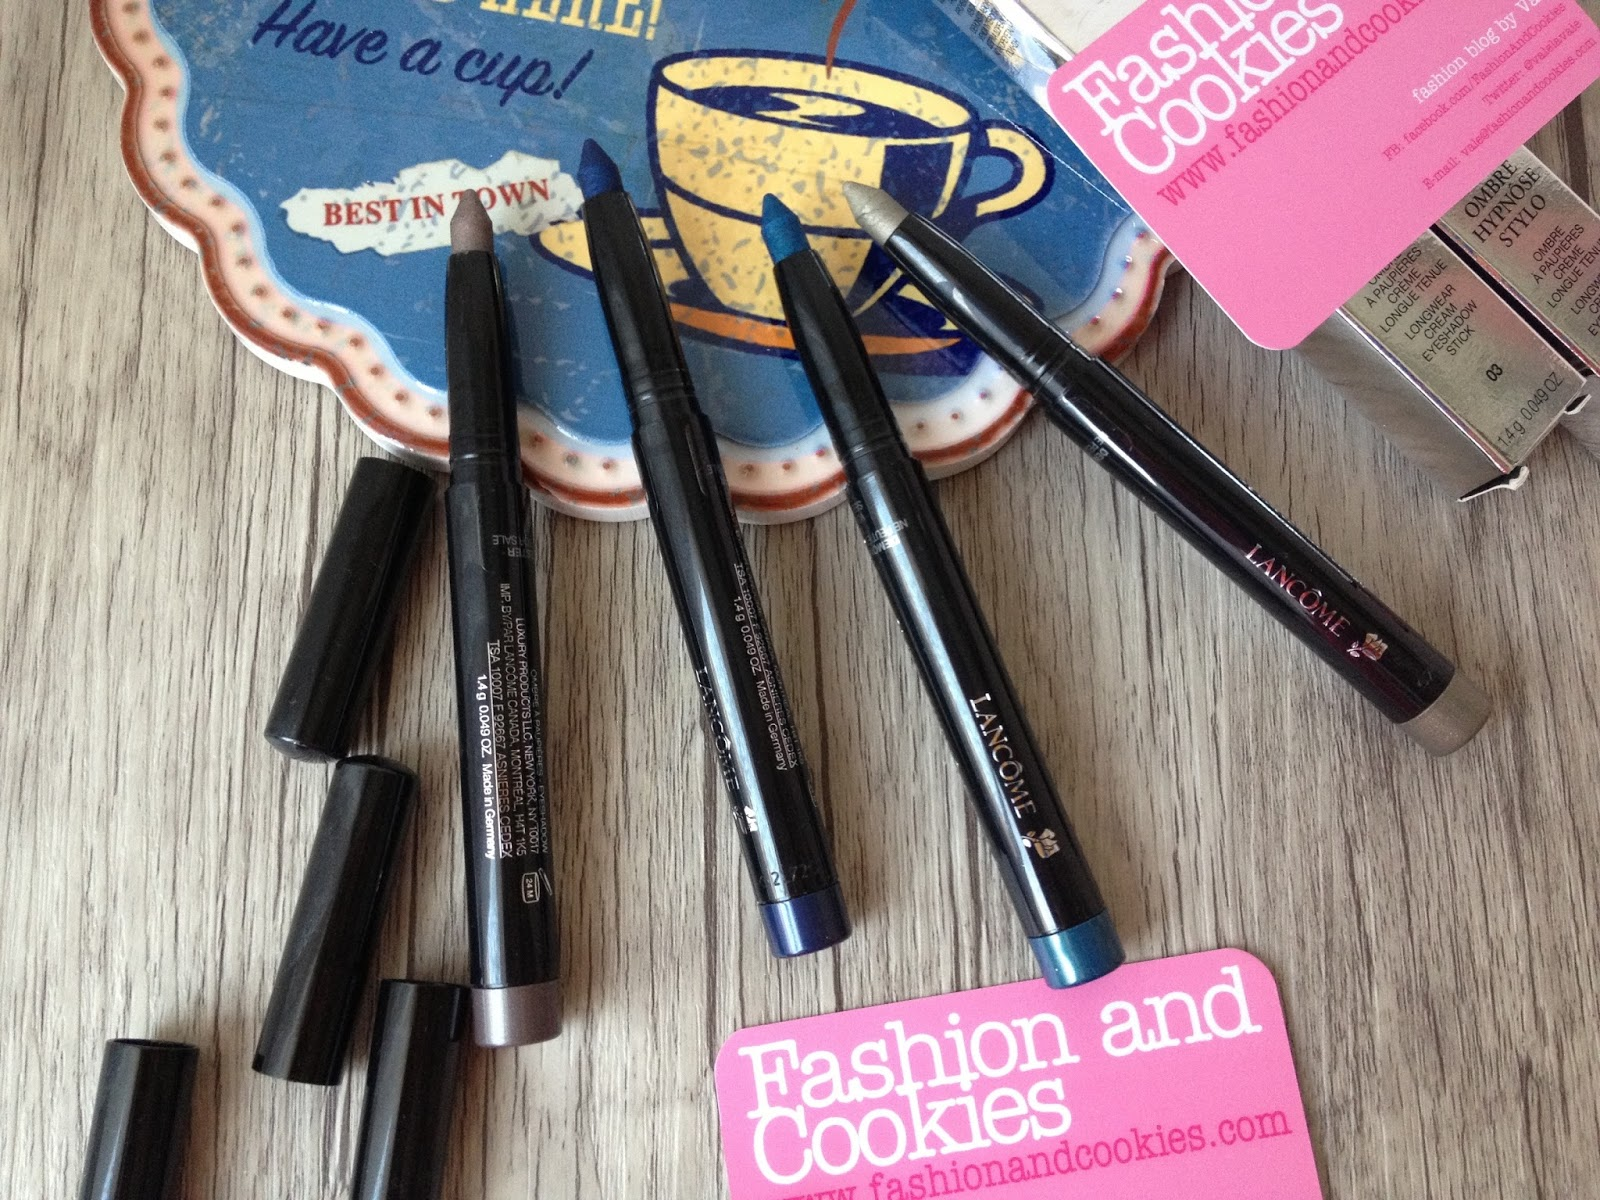 Lancôme Ombre Hypnôse Stylo cream eyeshadow review on Fashion and Cookies beauty blog